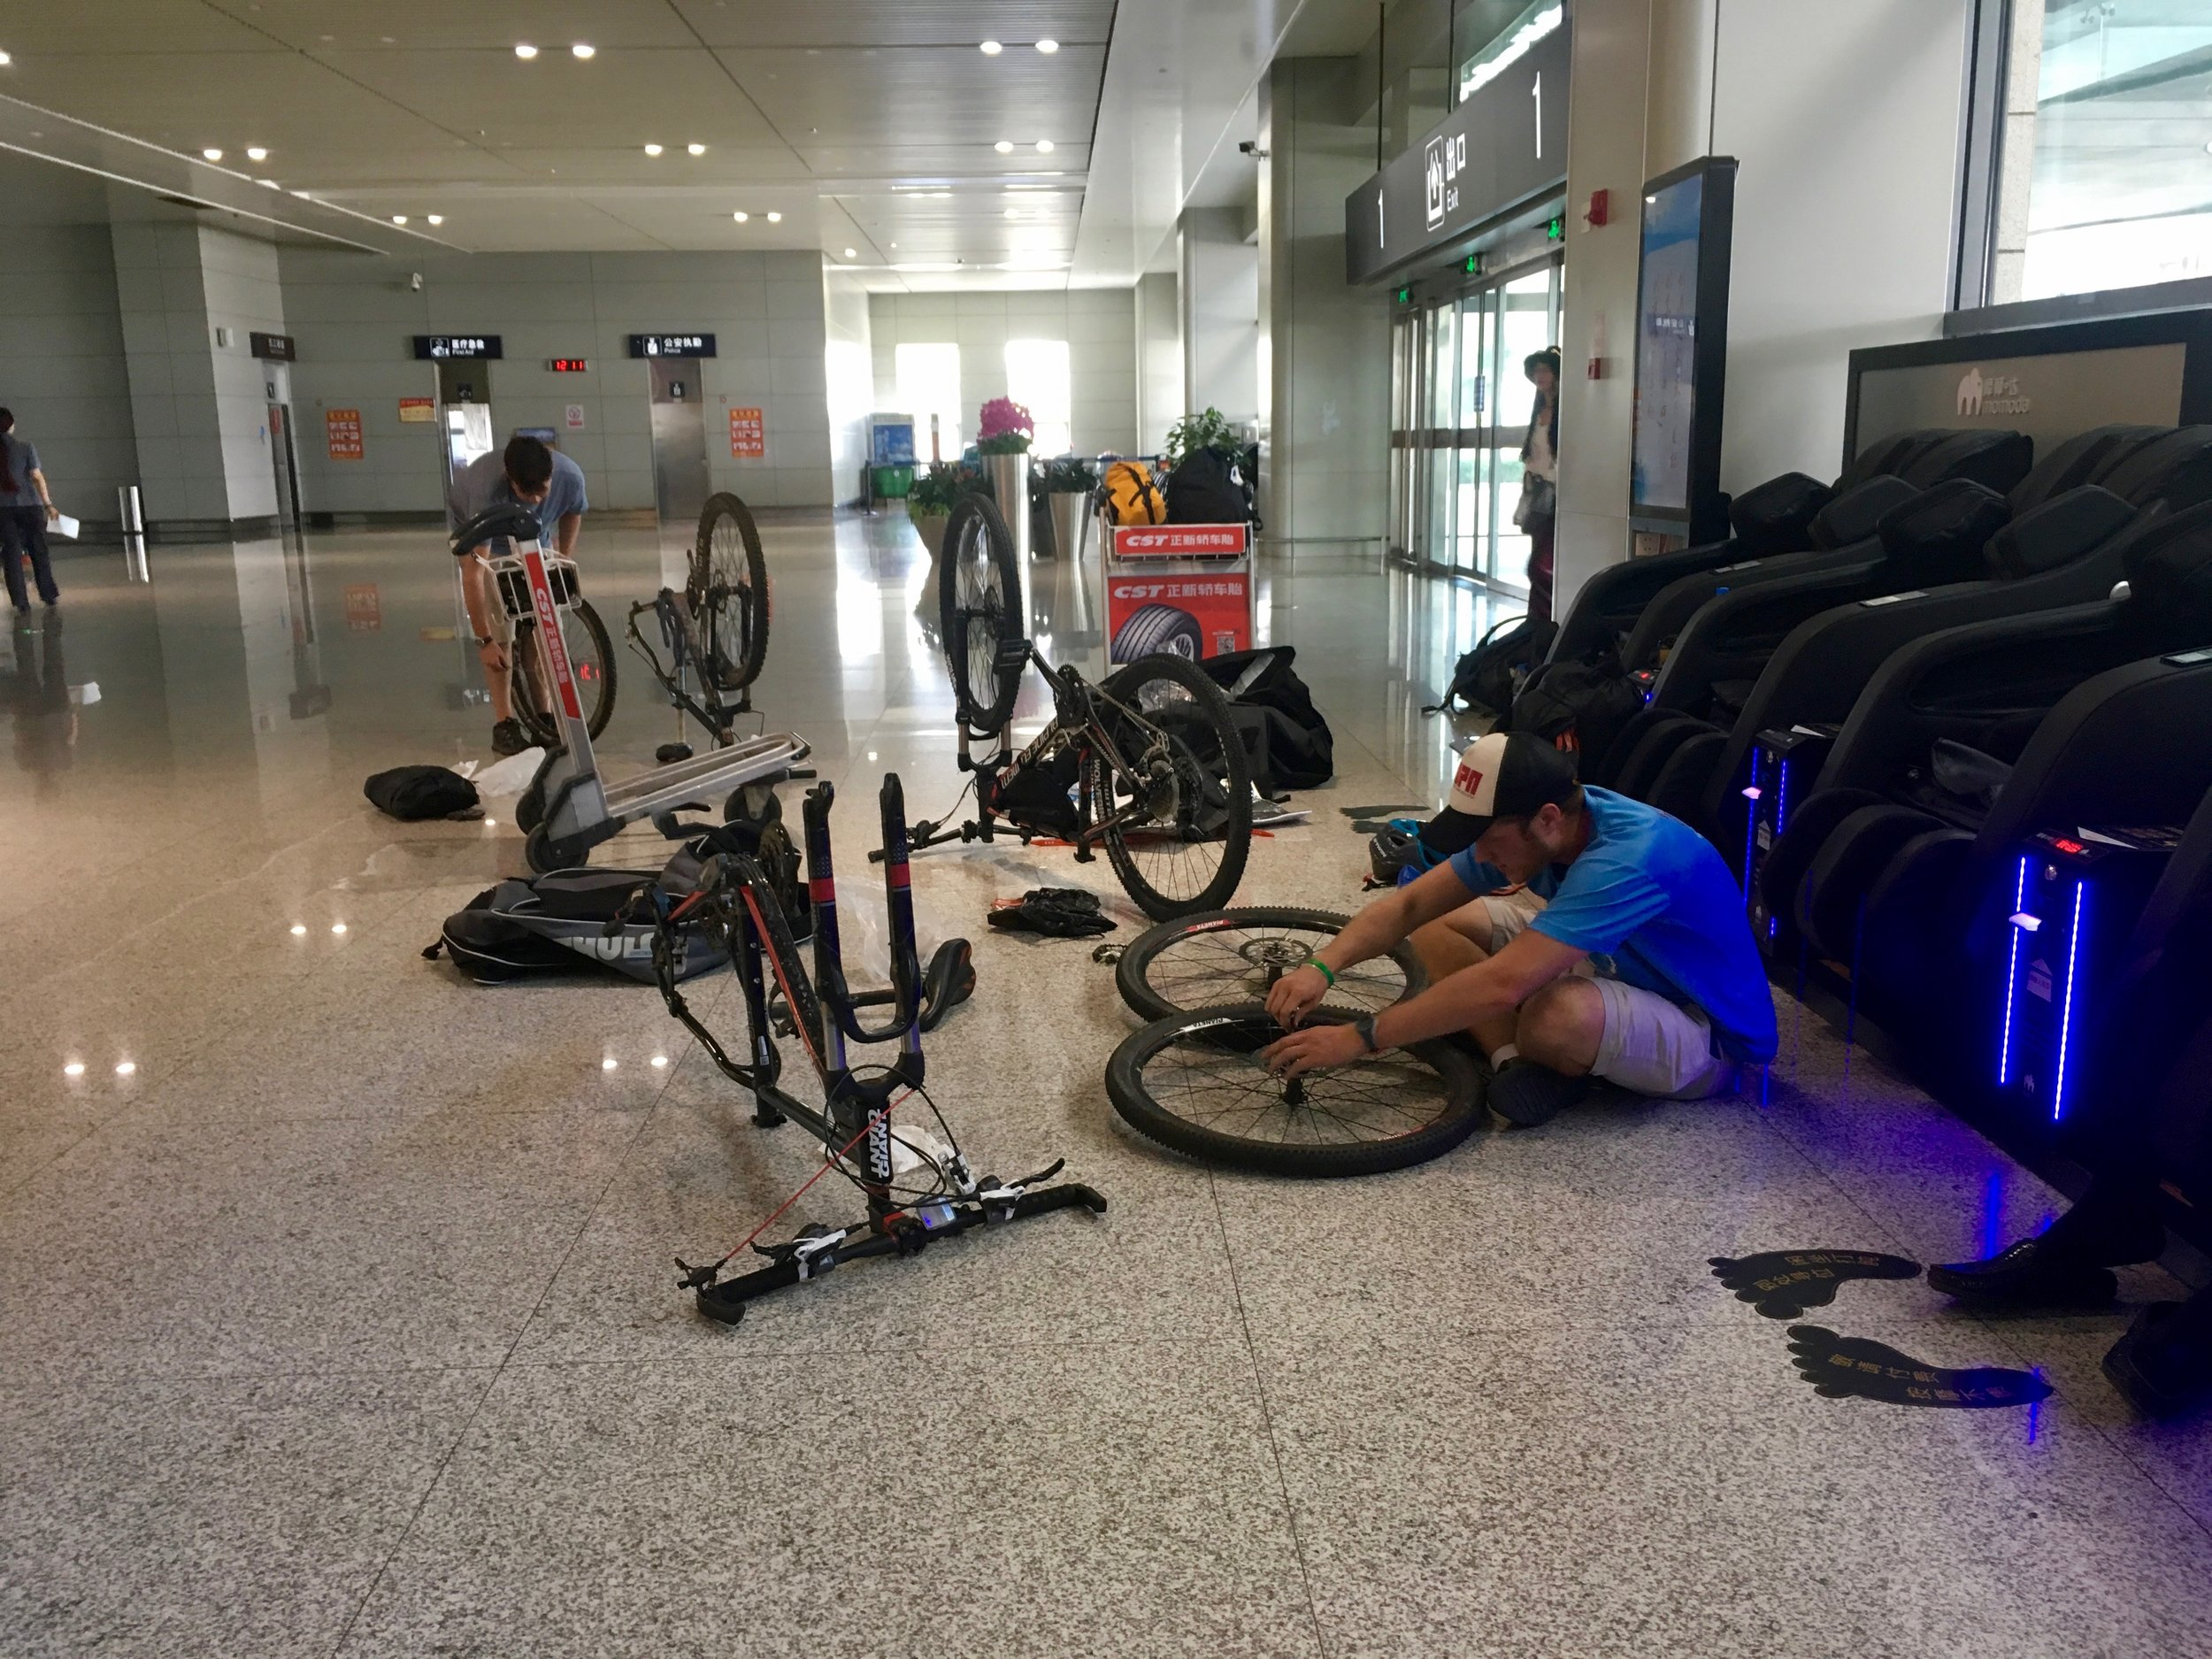 """Departing from Shanghai, we disassembled our bikes, threw them in bags, put """"Fragile"""" stickers on them and hoped for the best. No baggage fee and to our surprise we arrived in Xining Airport with our bicycles undamaged. Apparently U.S. airlines need to take some tips from their competitors across the pond."""